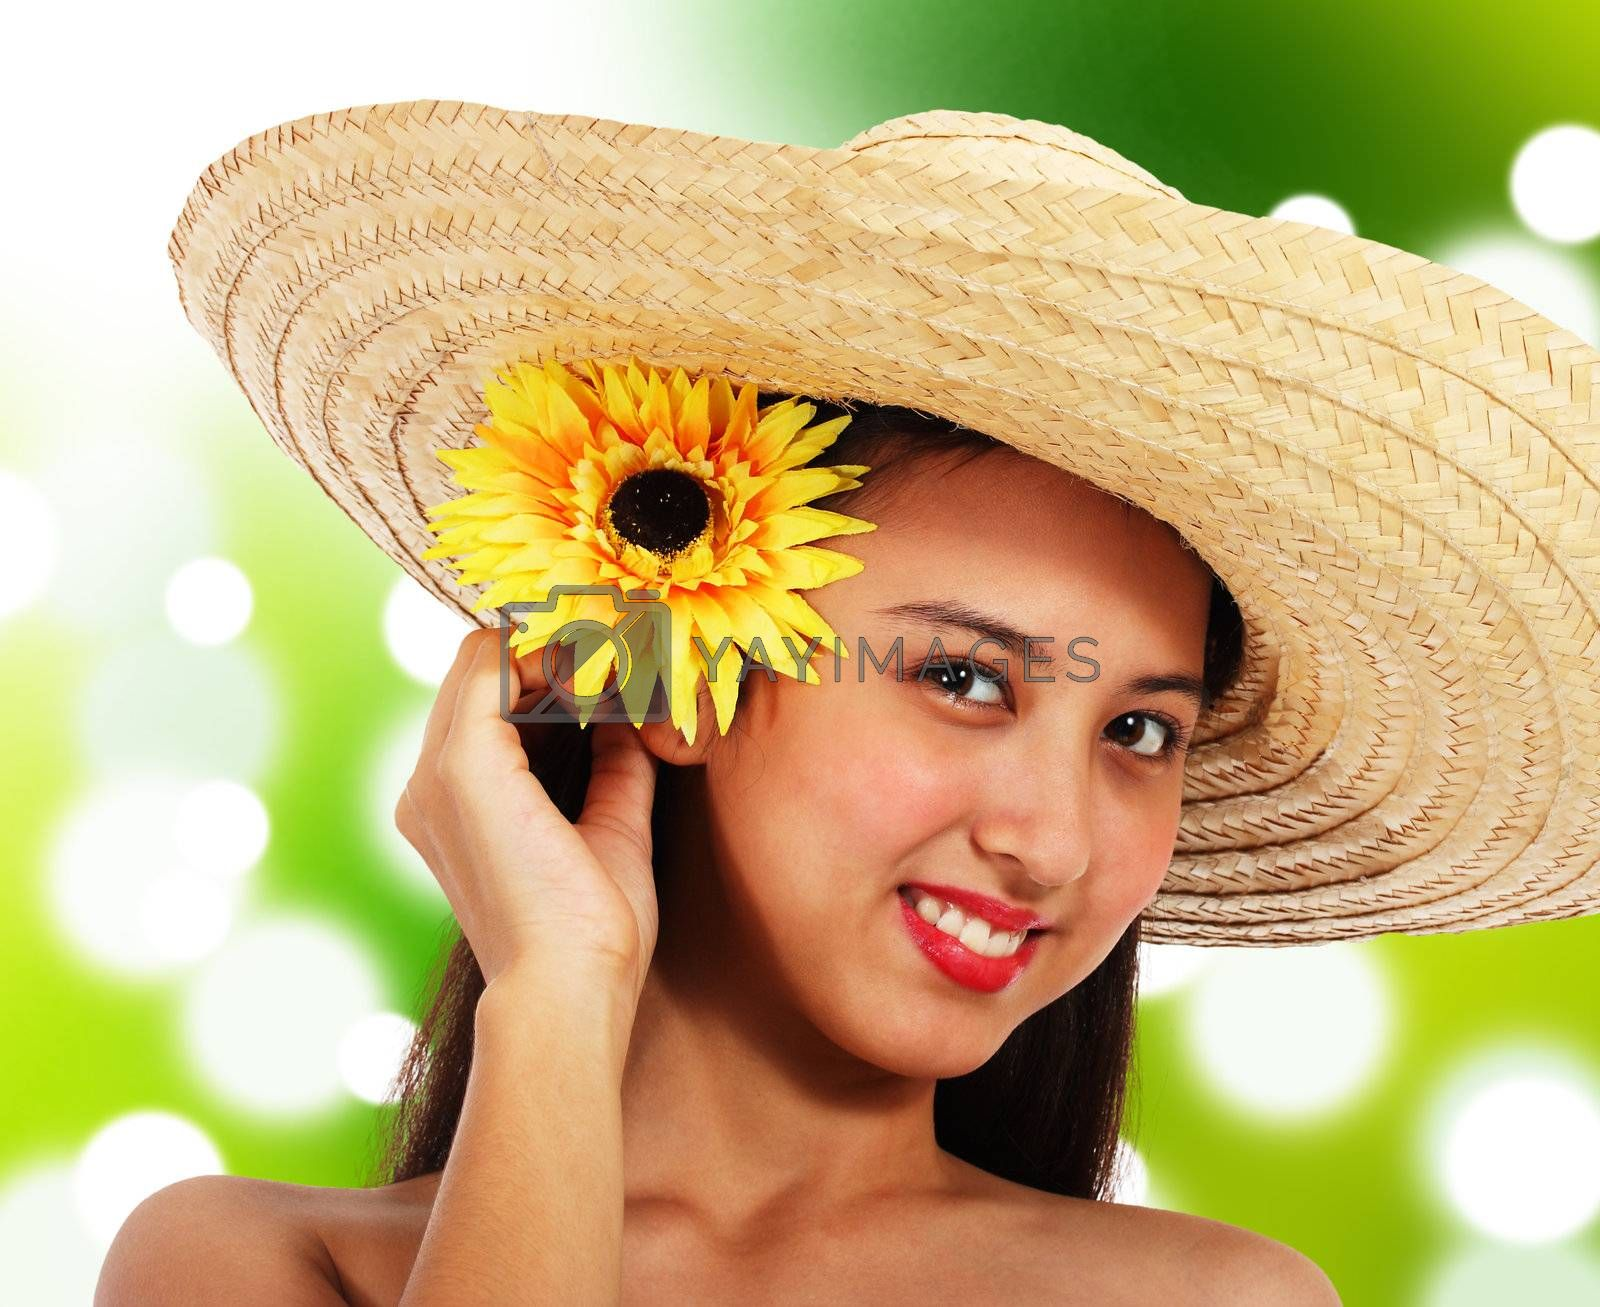 Smiling Girl Wearing A Straw Hat, In The Countryside